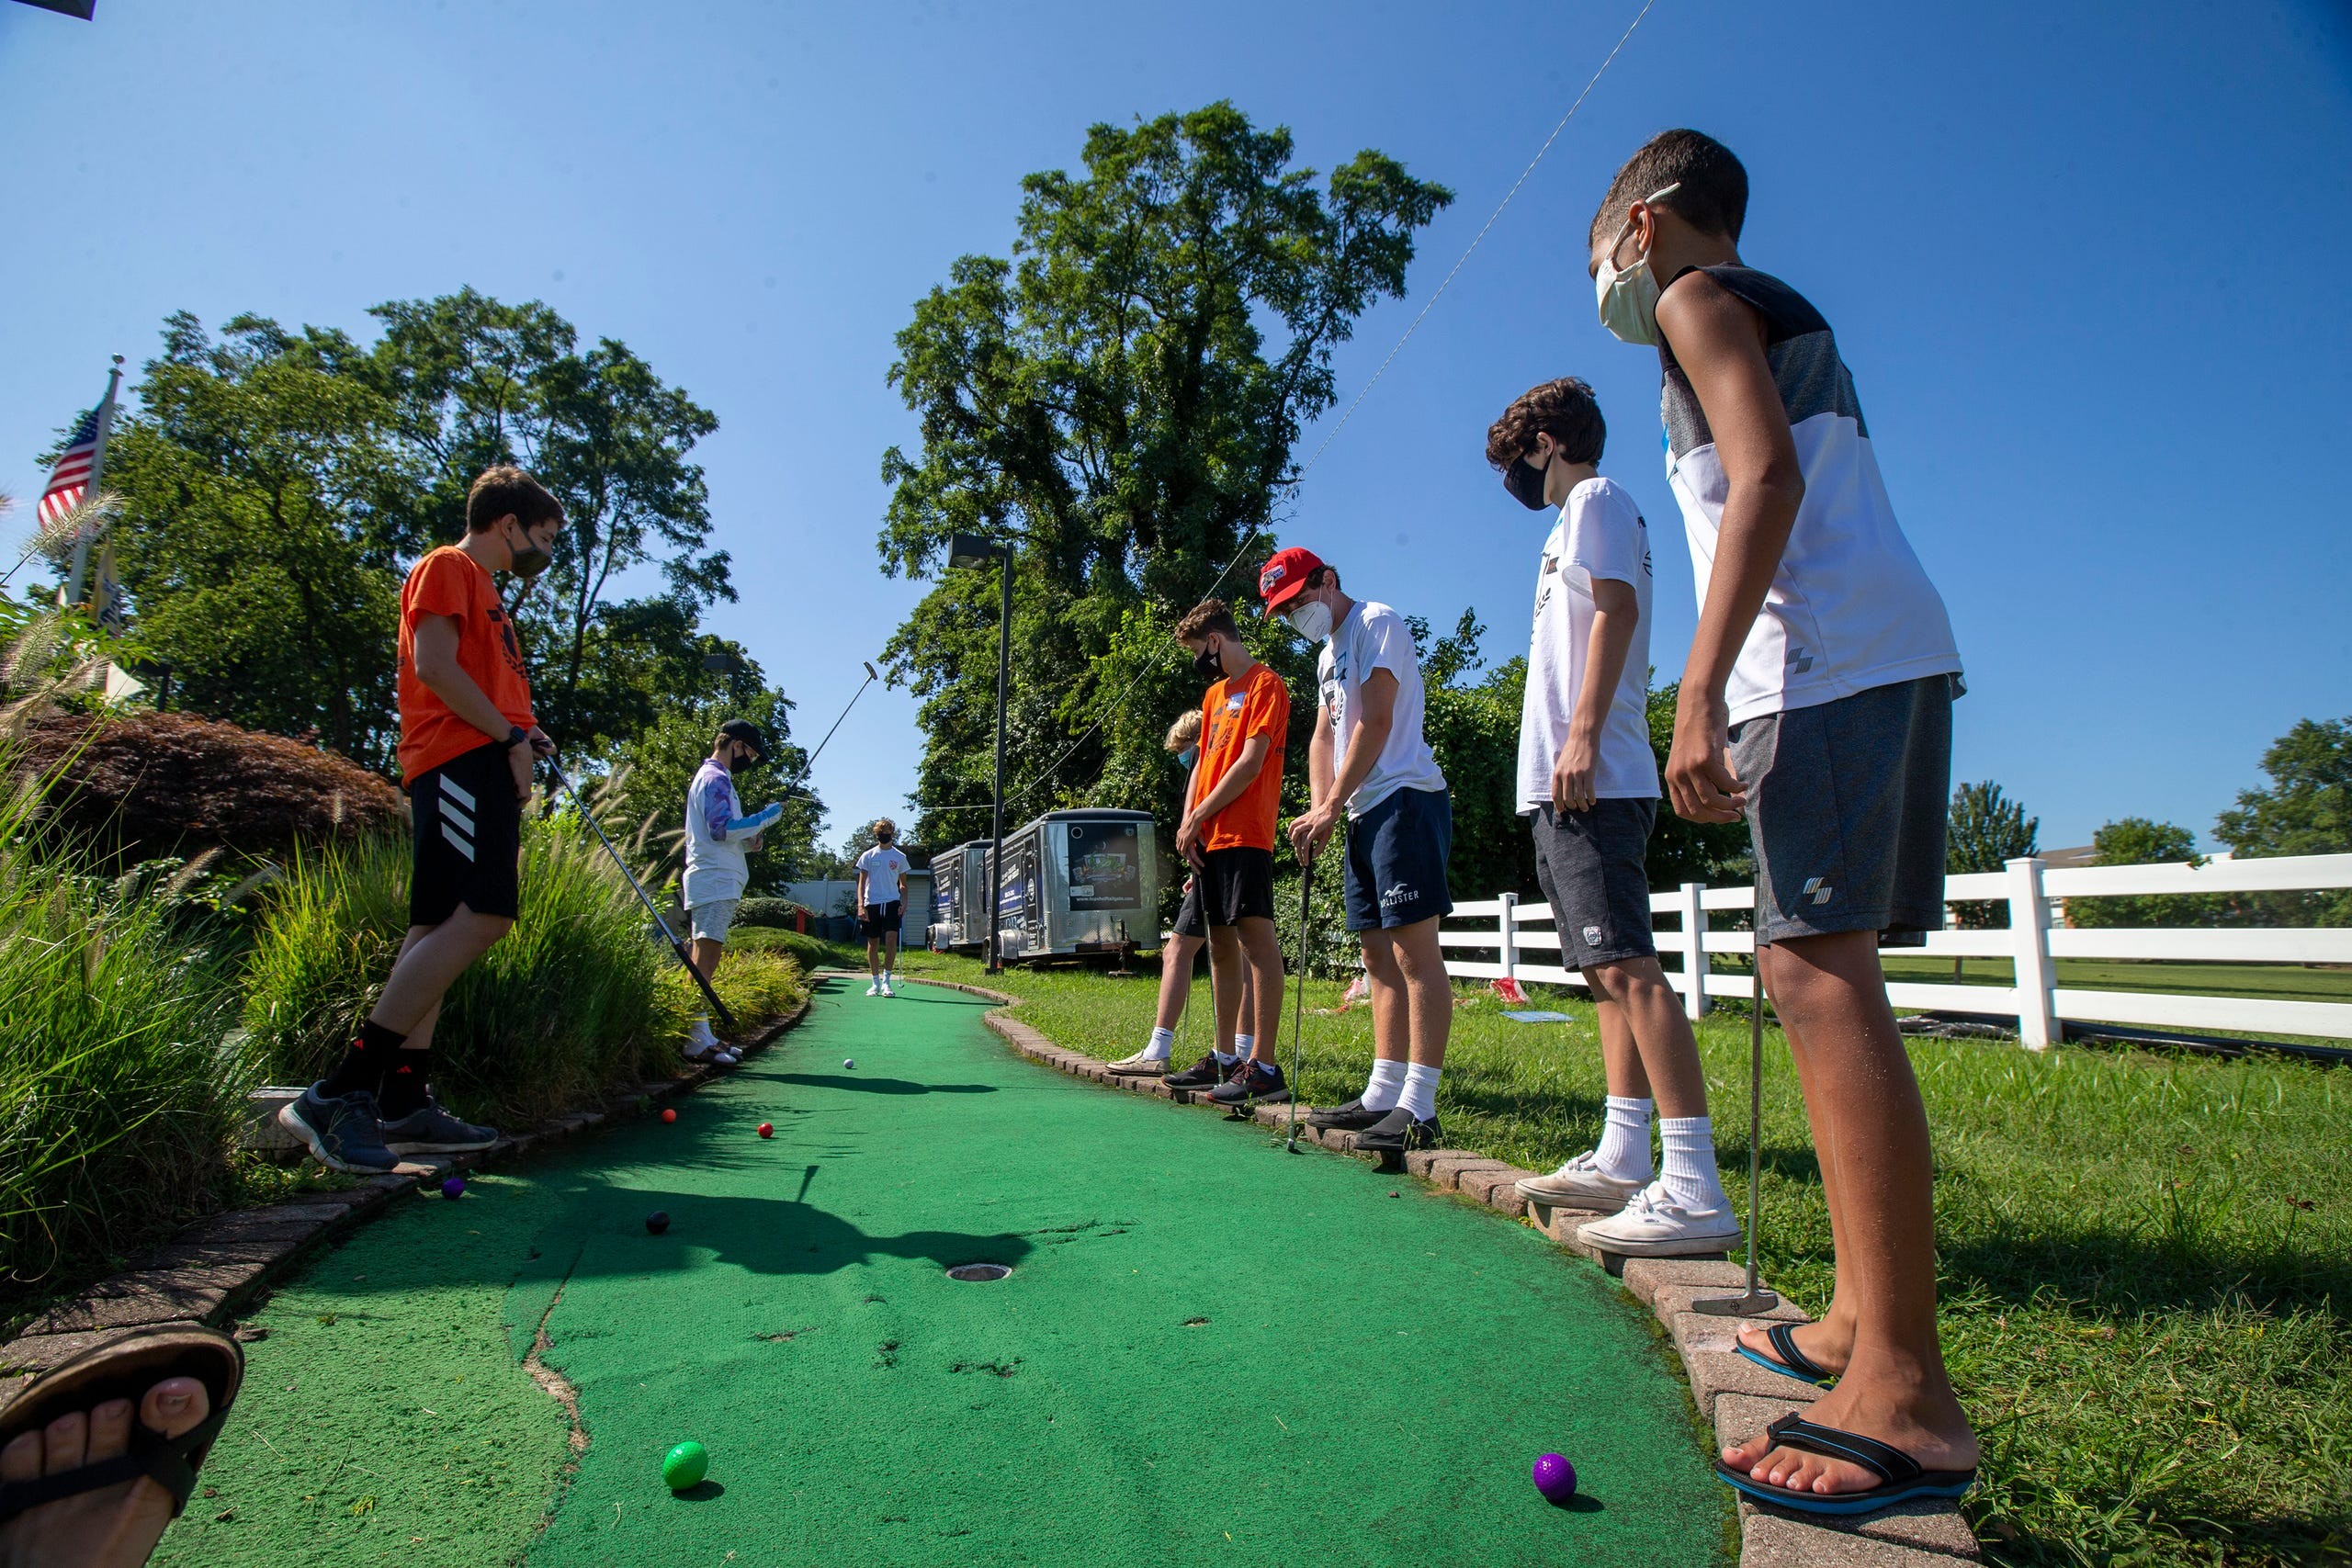 (right) Blake Illingworth, 13, of Middletown plays mini-golf with members of the Middletown North boys soccer team as part of Friends Connect Foundation, a nonprofit run by Sophia Ziajski, 19, of Middletown, atTST BBQ & Mini Golf in Middletown, NJ Tuesday, August 18, 2020.